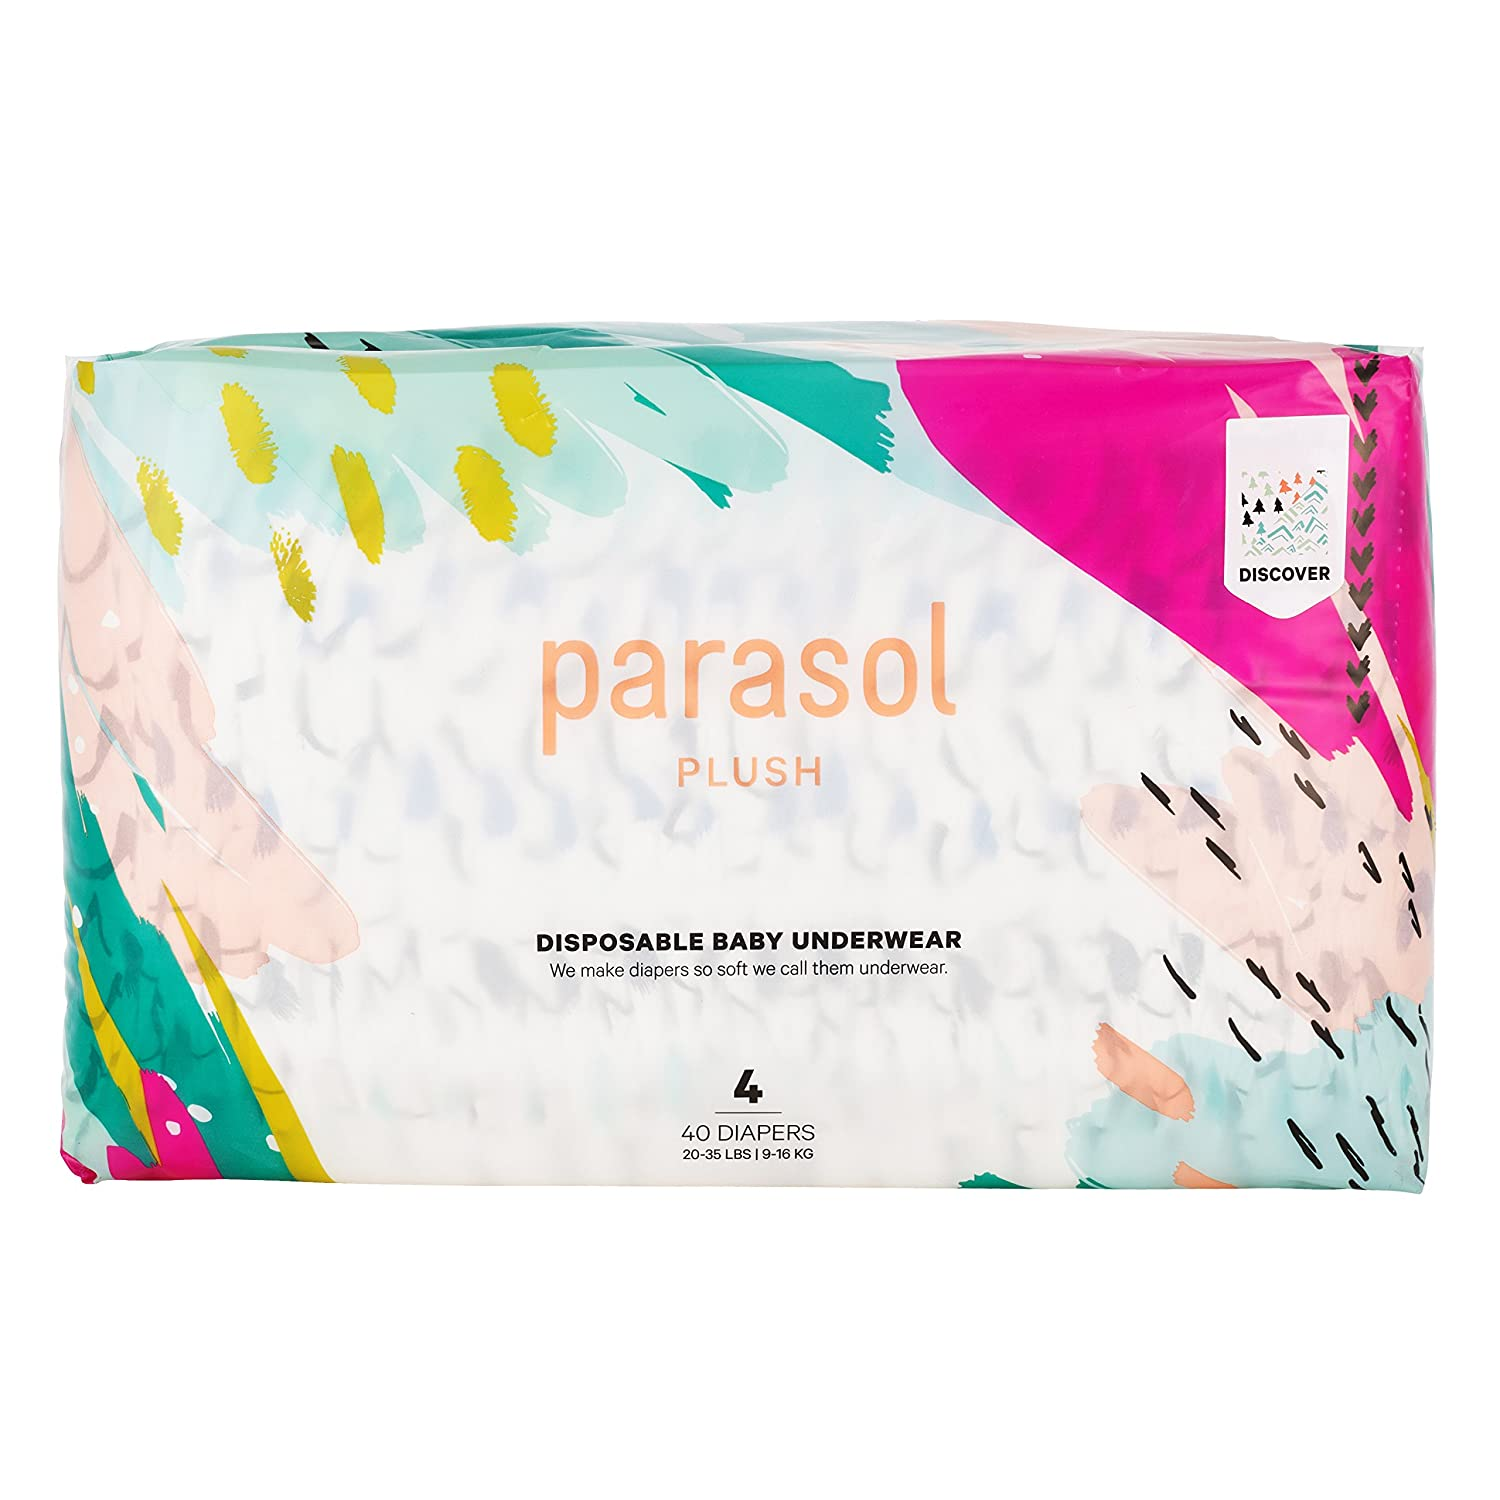 35 Count Parasol Plush Baby Diaper Discover Collection Size 5